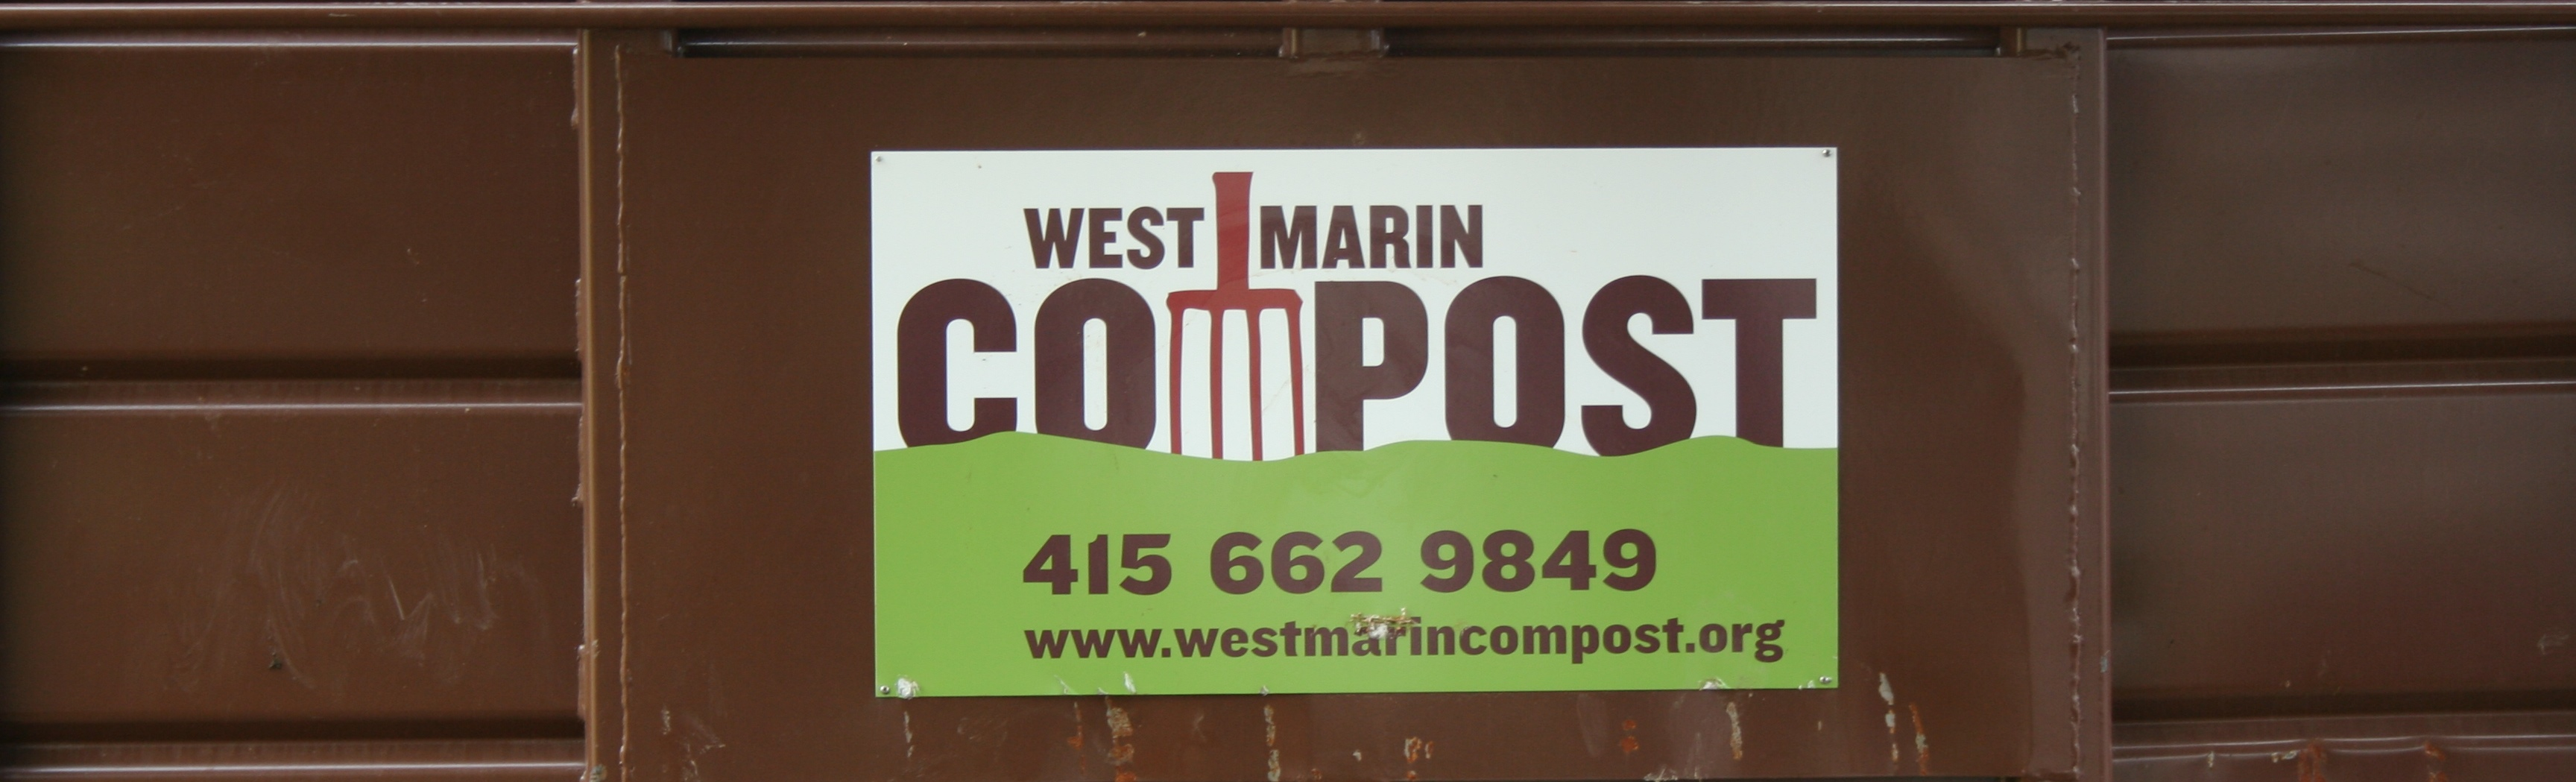 Compost.sign